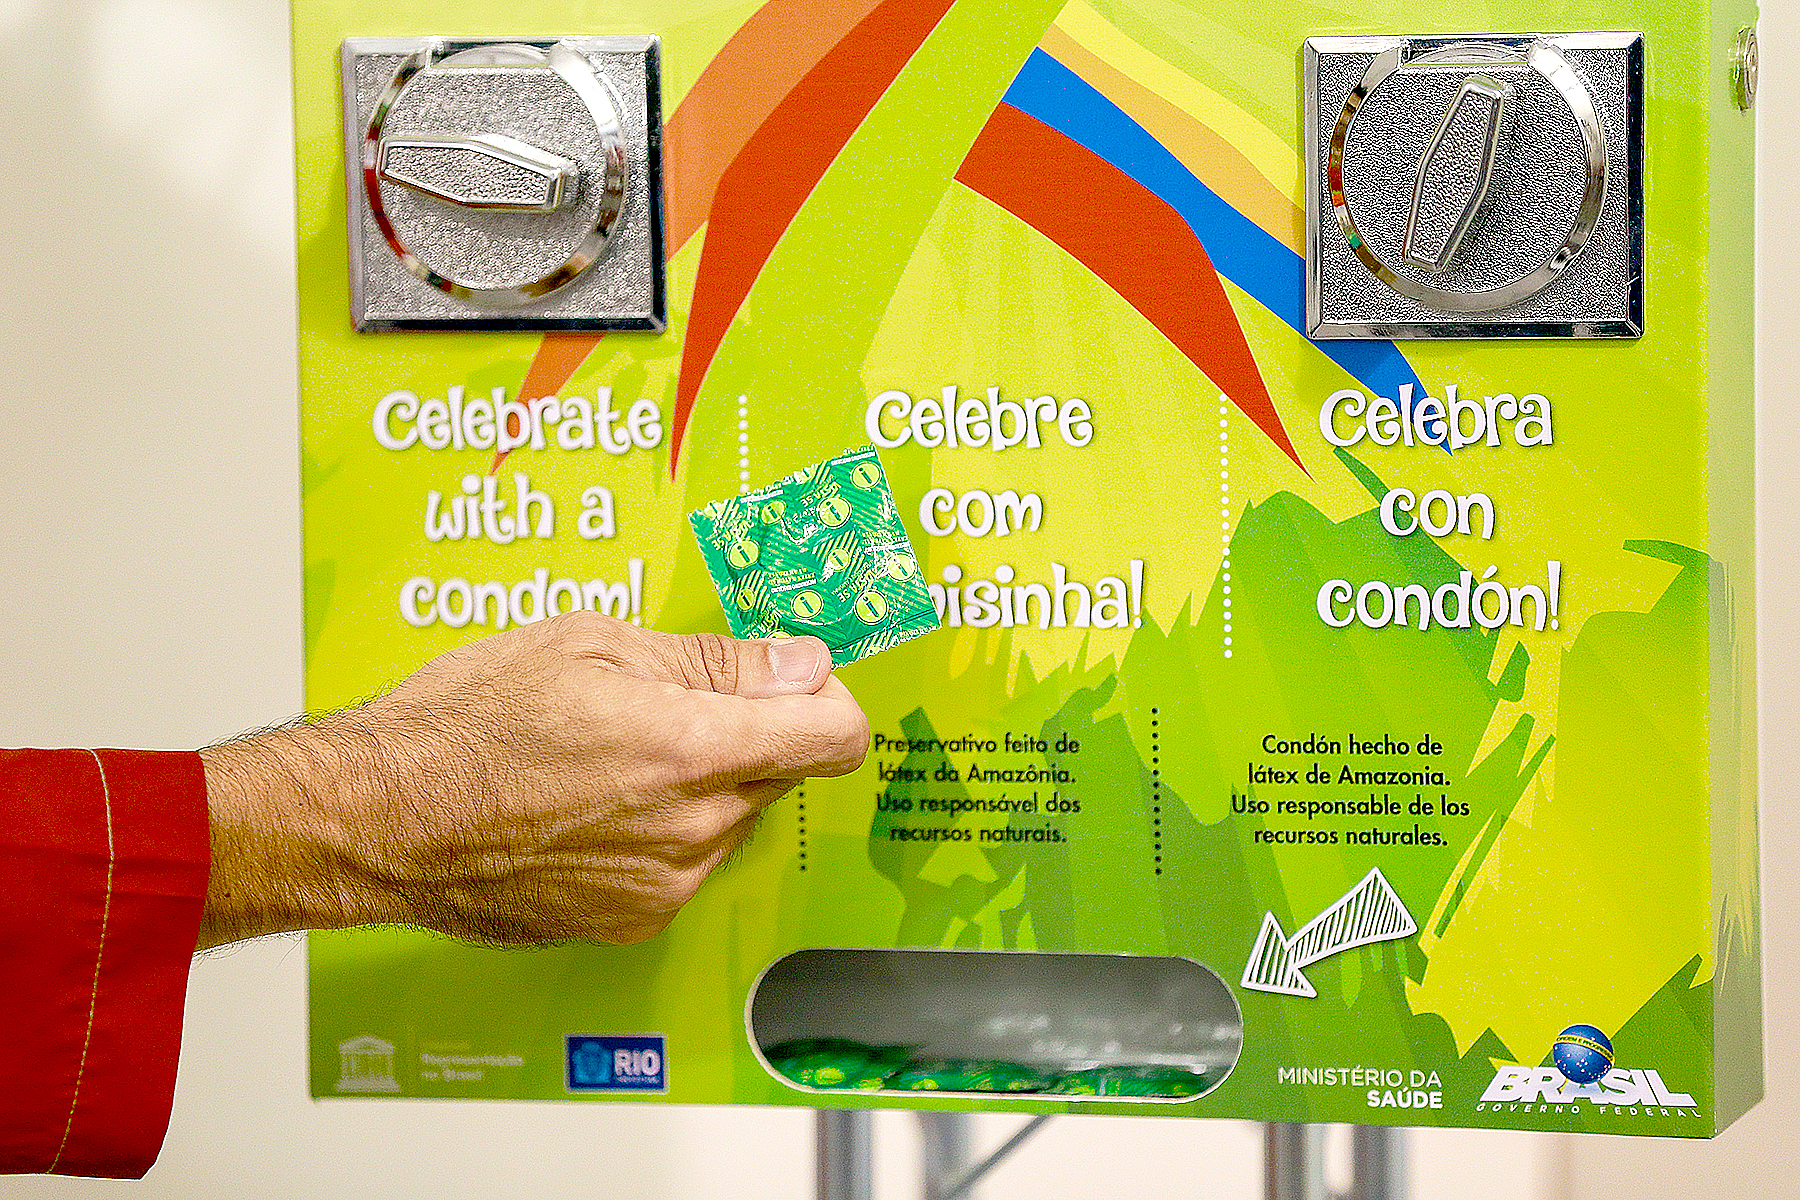 What Olympians Really Do With Those 450,000 Condoms